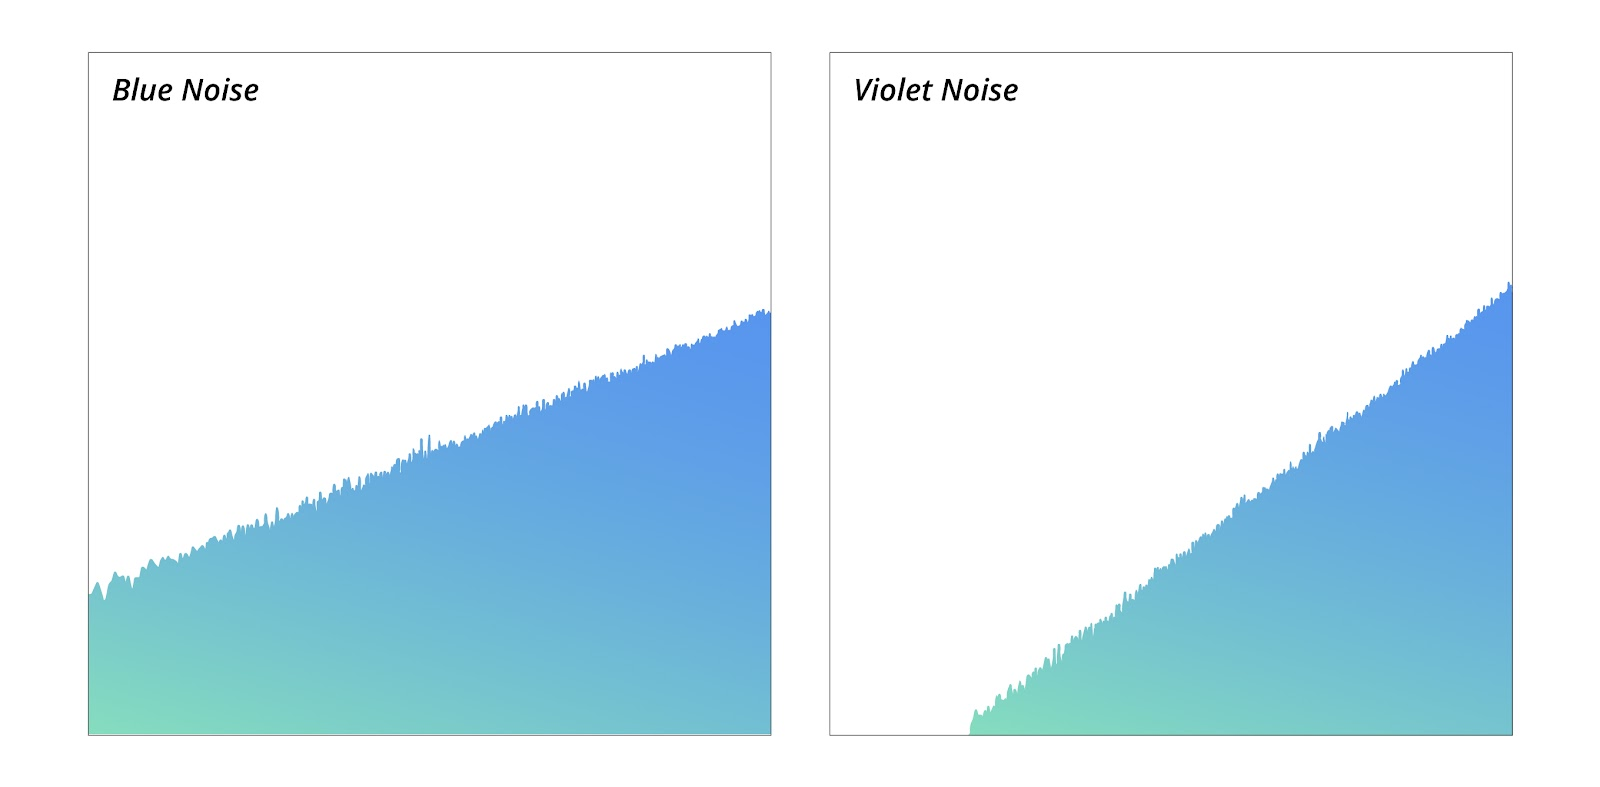 blue noise and violet noise image in comparison